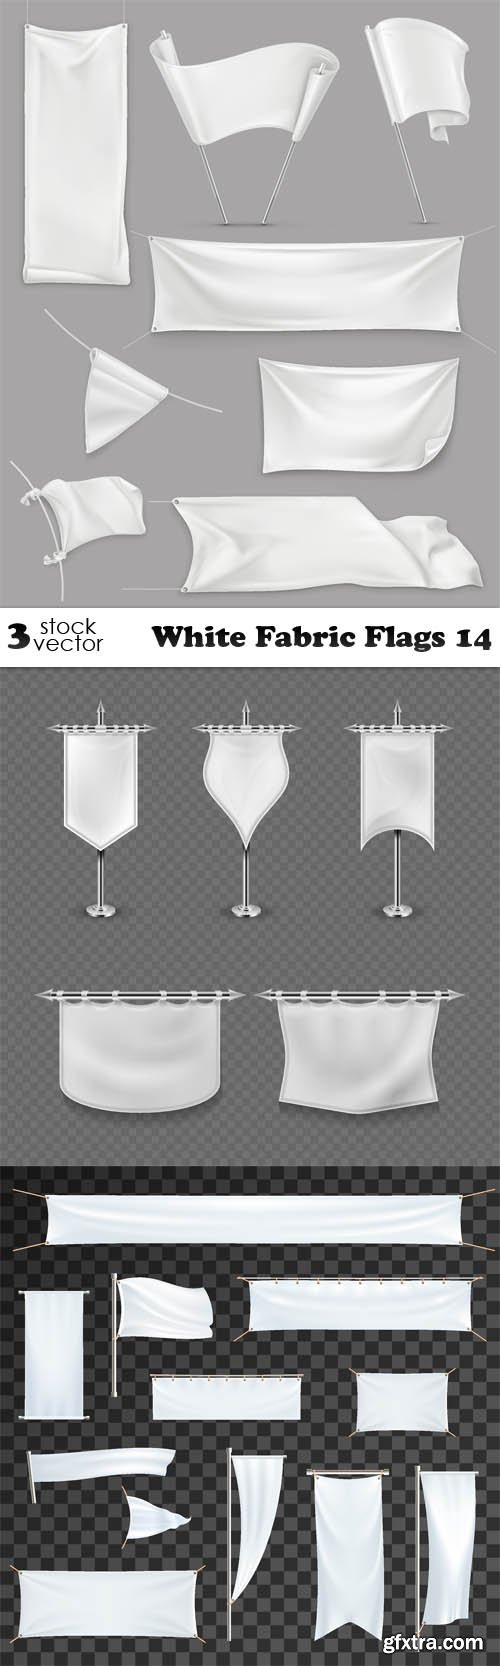 Vectors - White Fabric Flags 14